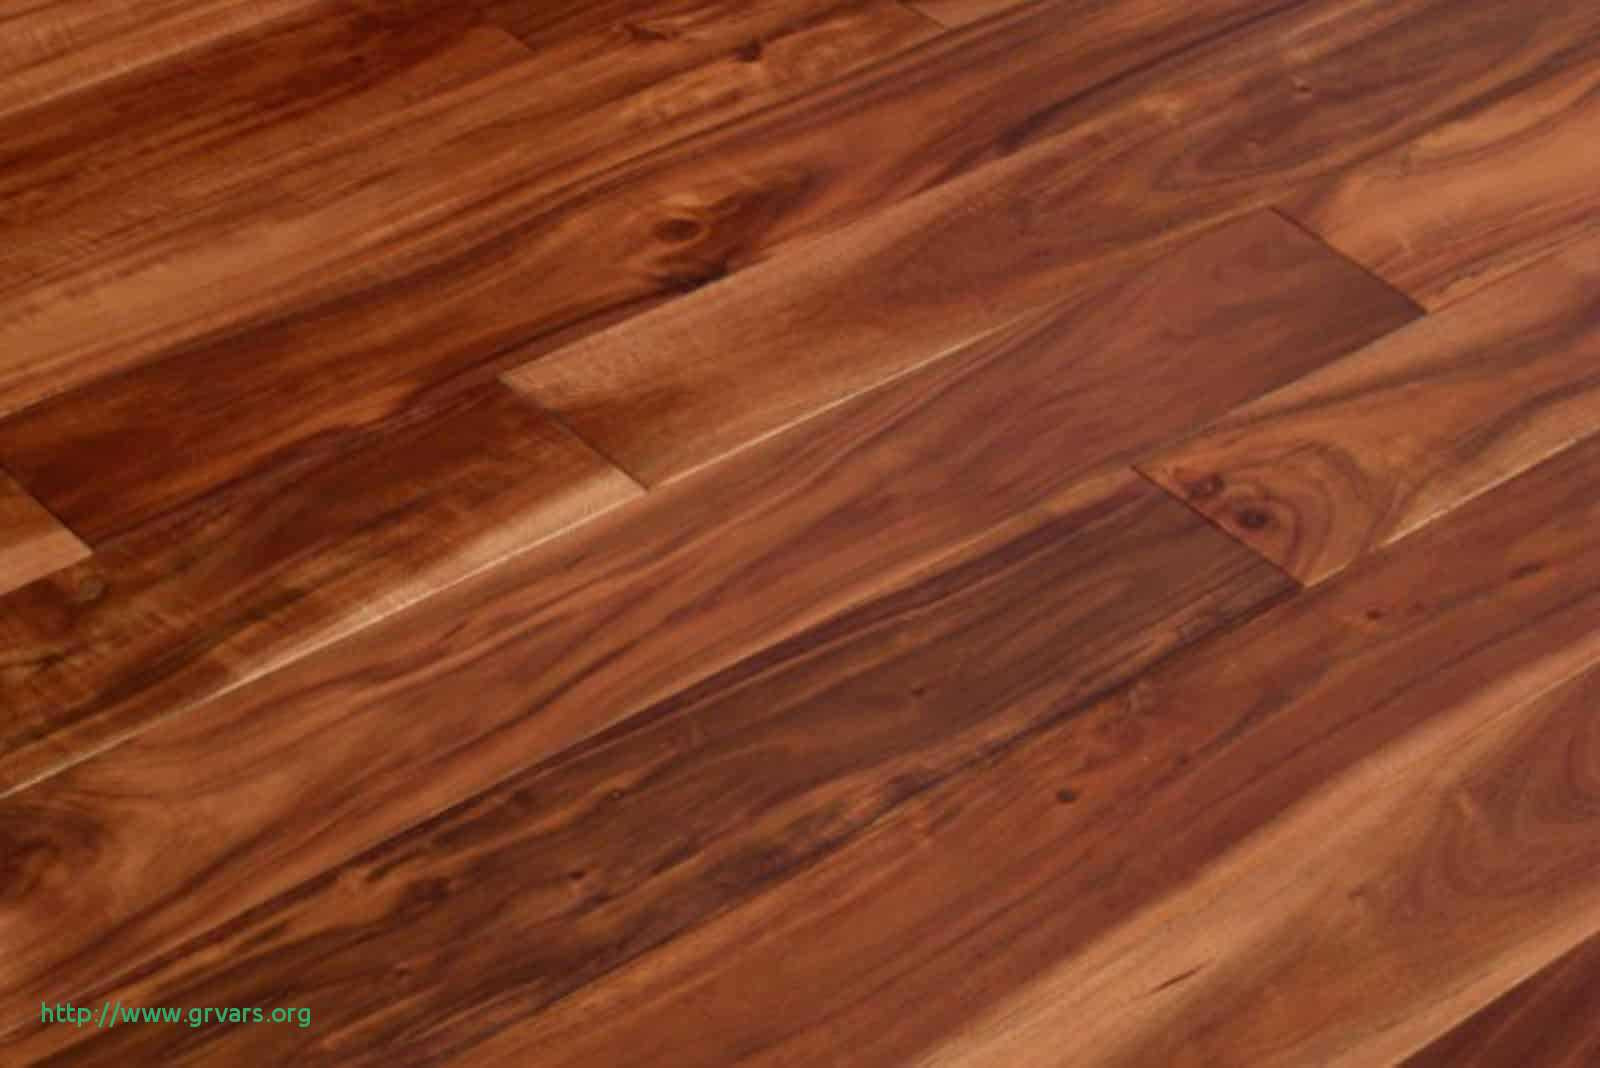 how do you clean prefinished hardwood floors of 21 luxe how to clean prefinished hardwood floors with vinegar throughout clean hardwood floors with vinegar and water podemosleganes